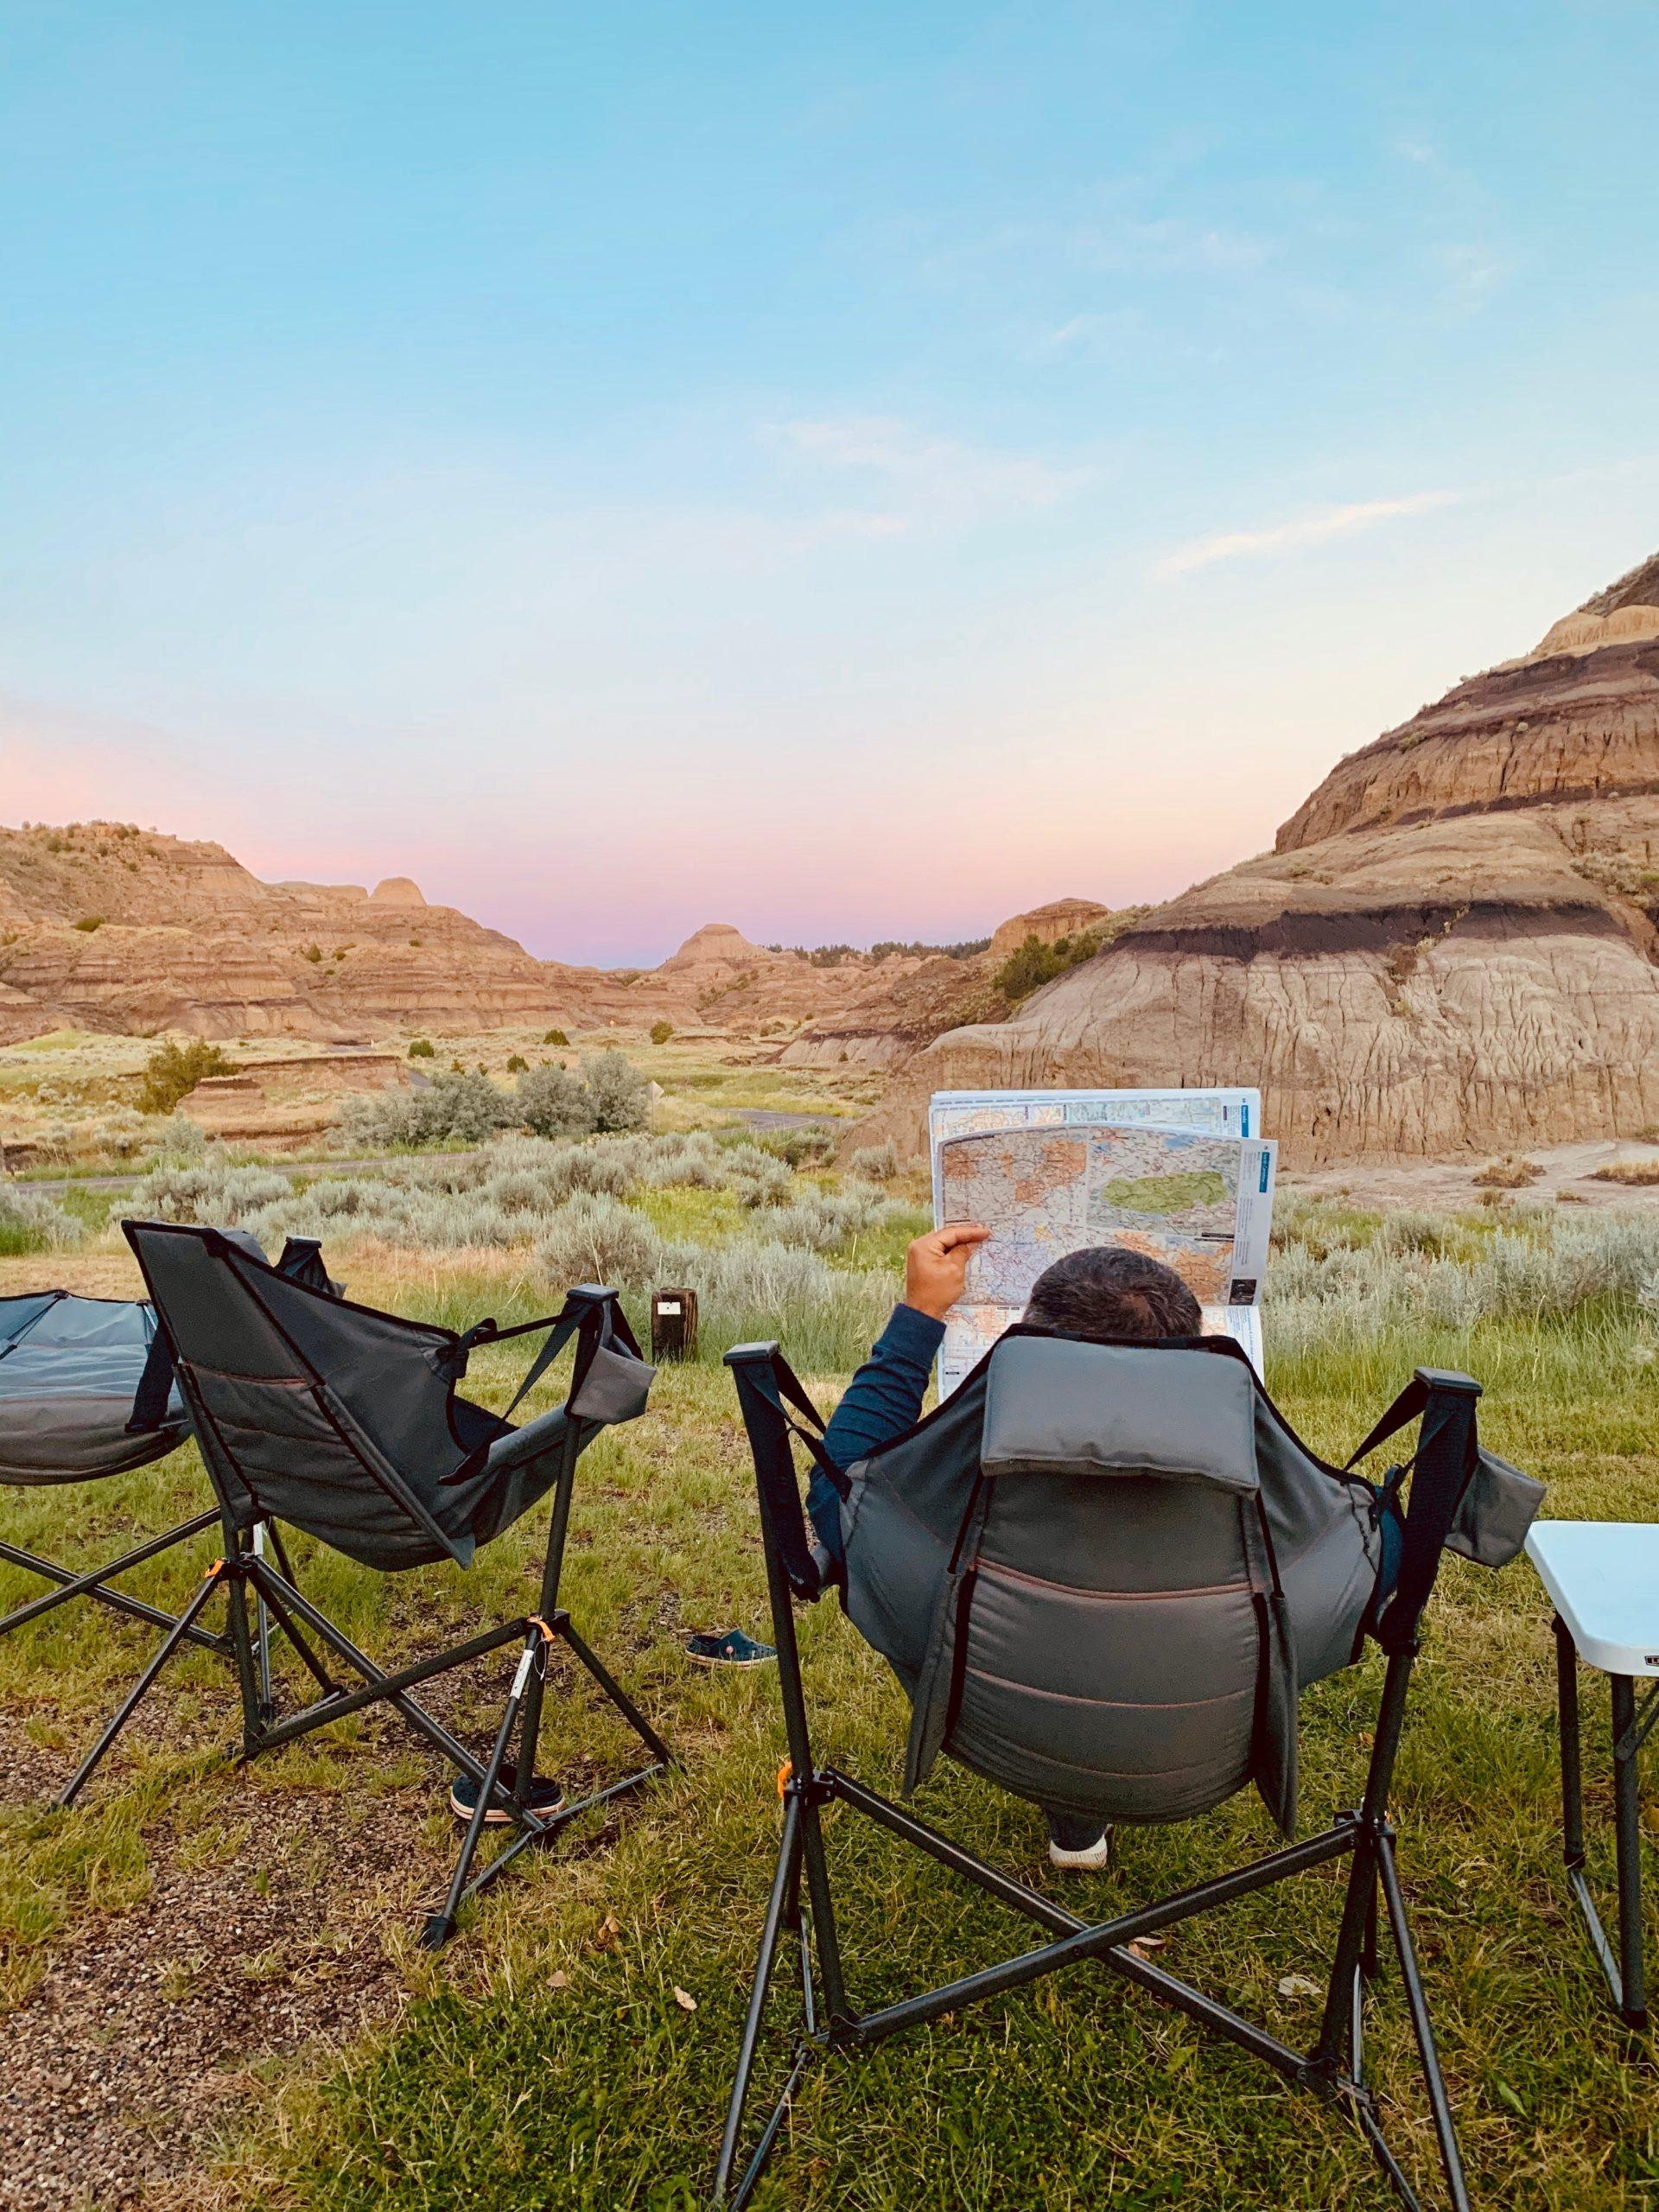 Sunset-Road-Trip-Planning-in-Swinging-Camp-Chair